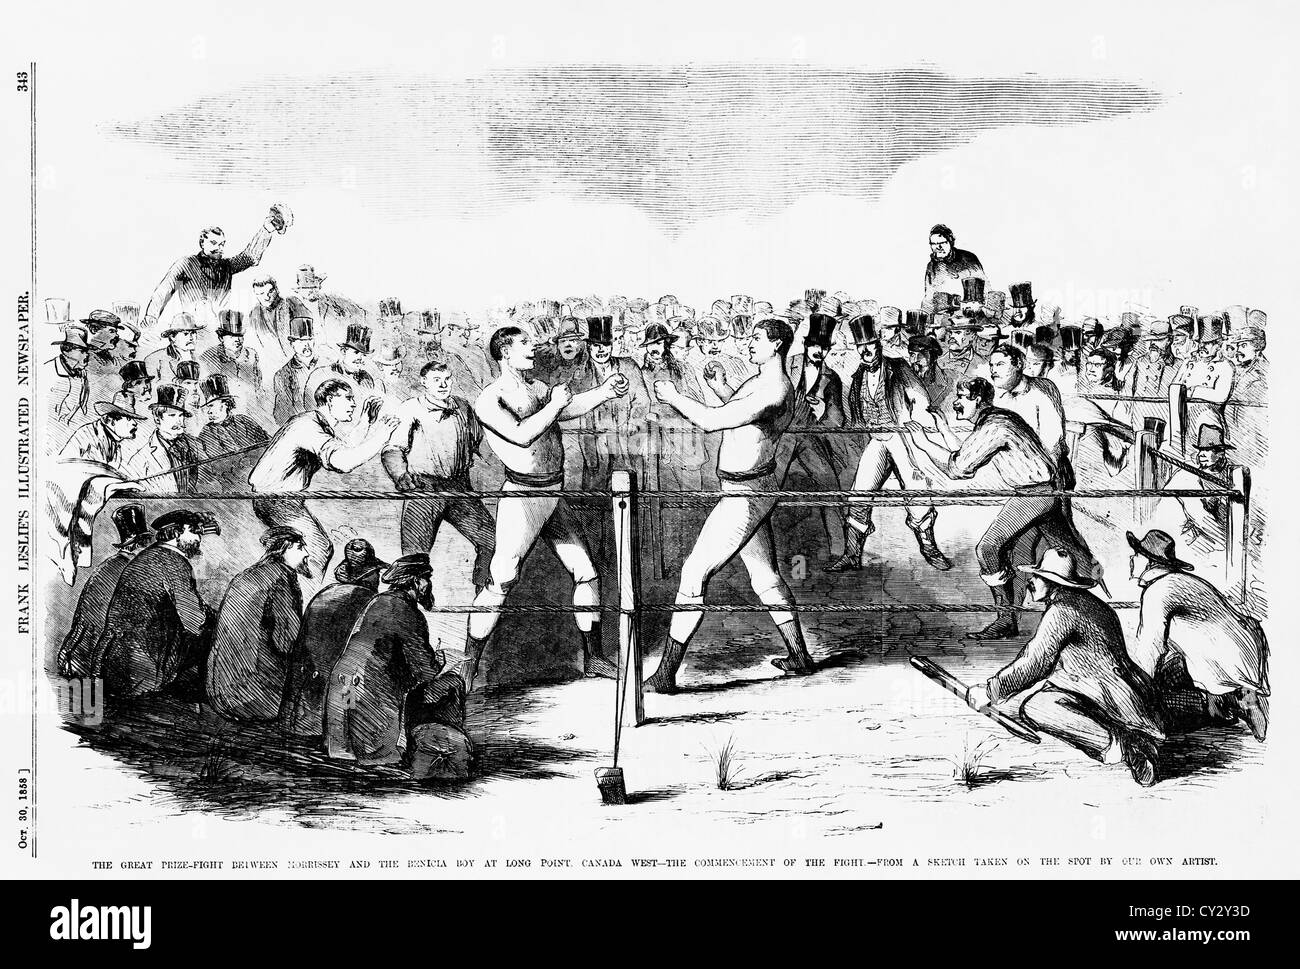 Vintage newspaper illustration depicting the start of the famous bare-knuckle fight for the heavyweight Championship - Stock Image